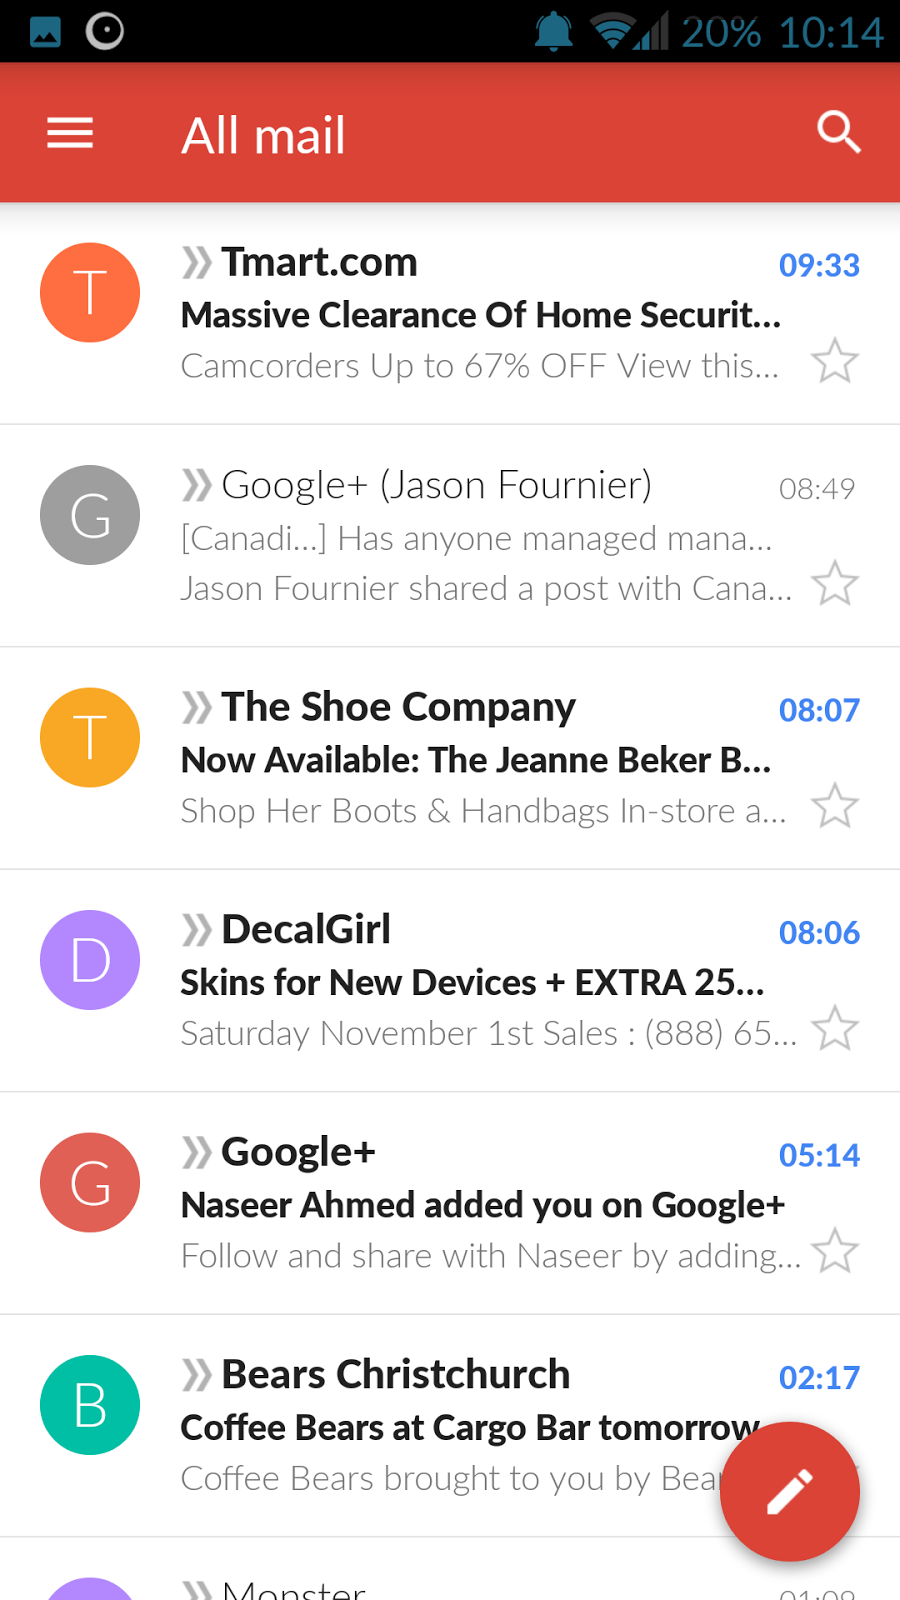 GMail 5 0 and Exchange lighting up the internet on FIRE